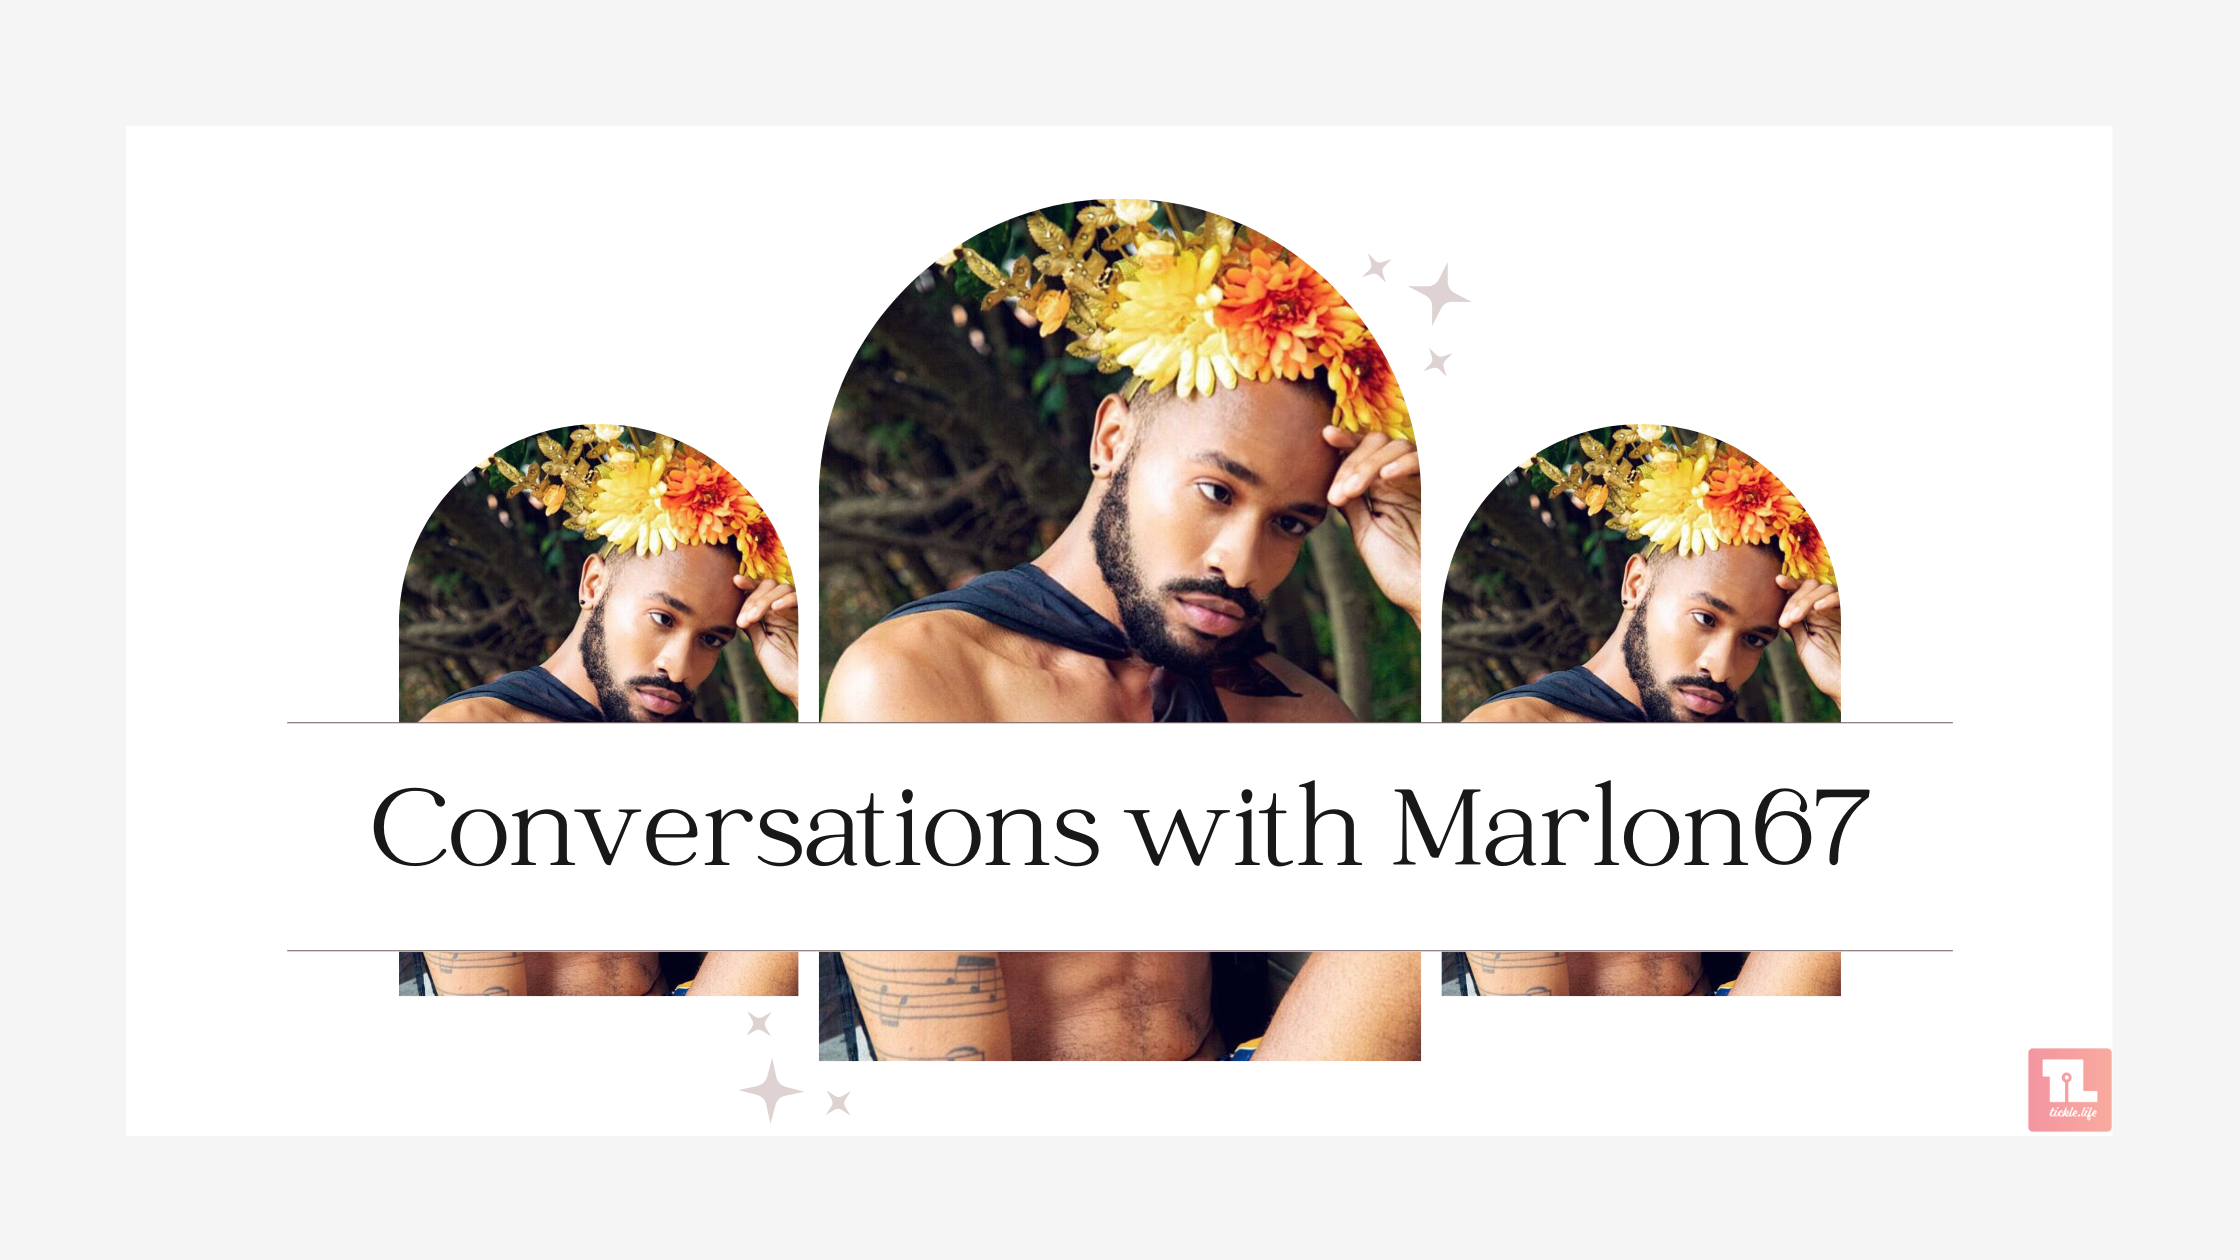 Conversations with Marlon67, Adult Entertainer and Content Creator